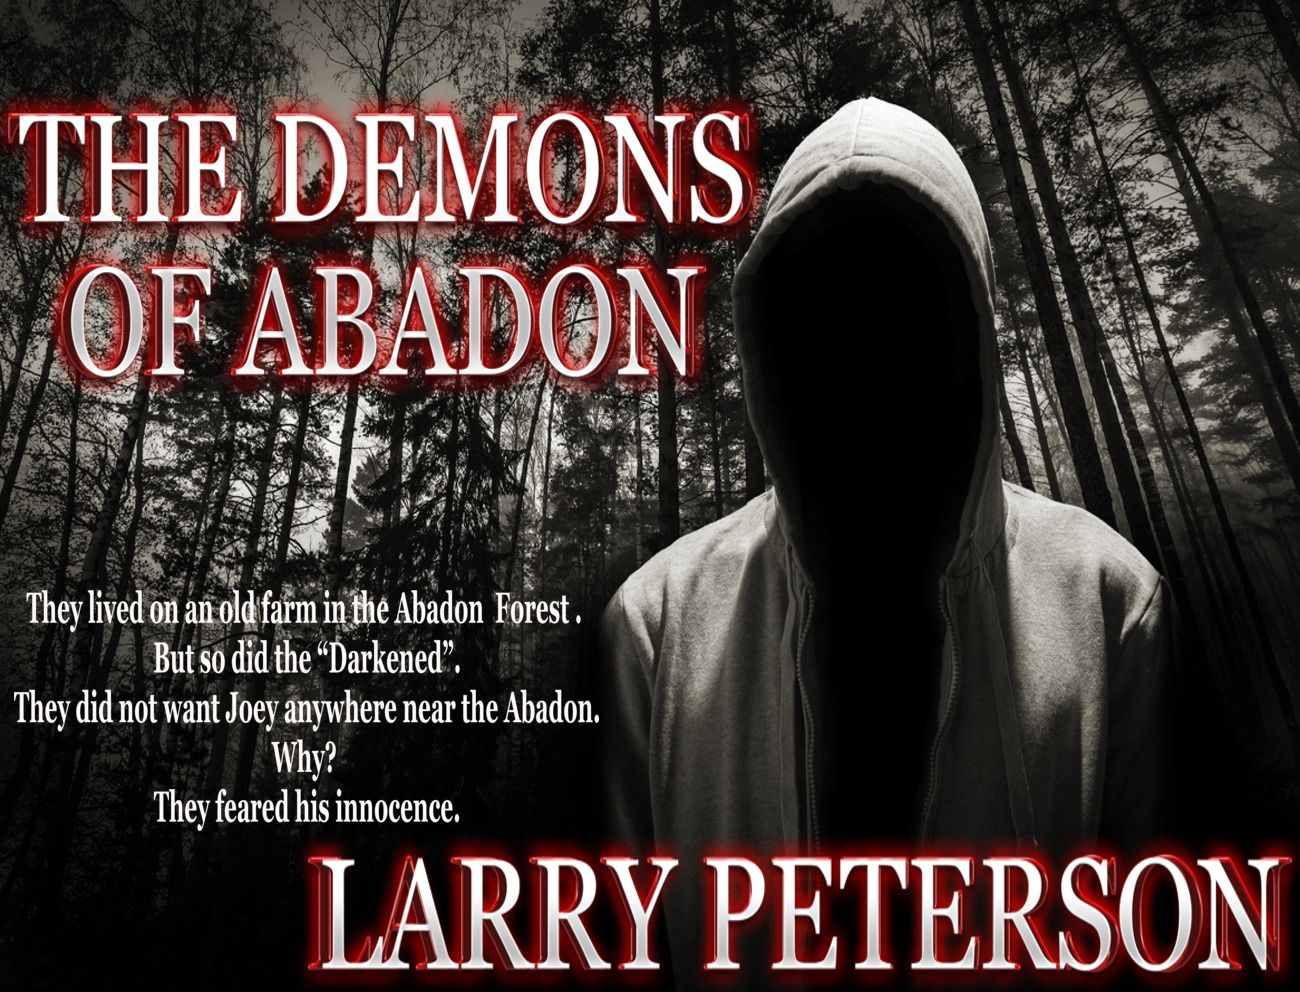 An Overview of Who I am and my WORK- Larry Peterson@slipperywillie #YAFantasy #Demons #Fantasy #ChildrensLiterature http://ow.ly/OsMT7